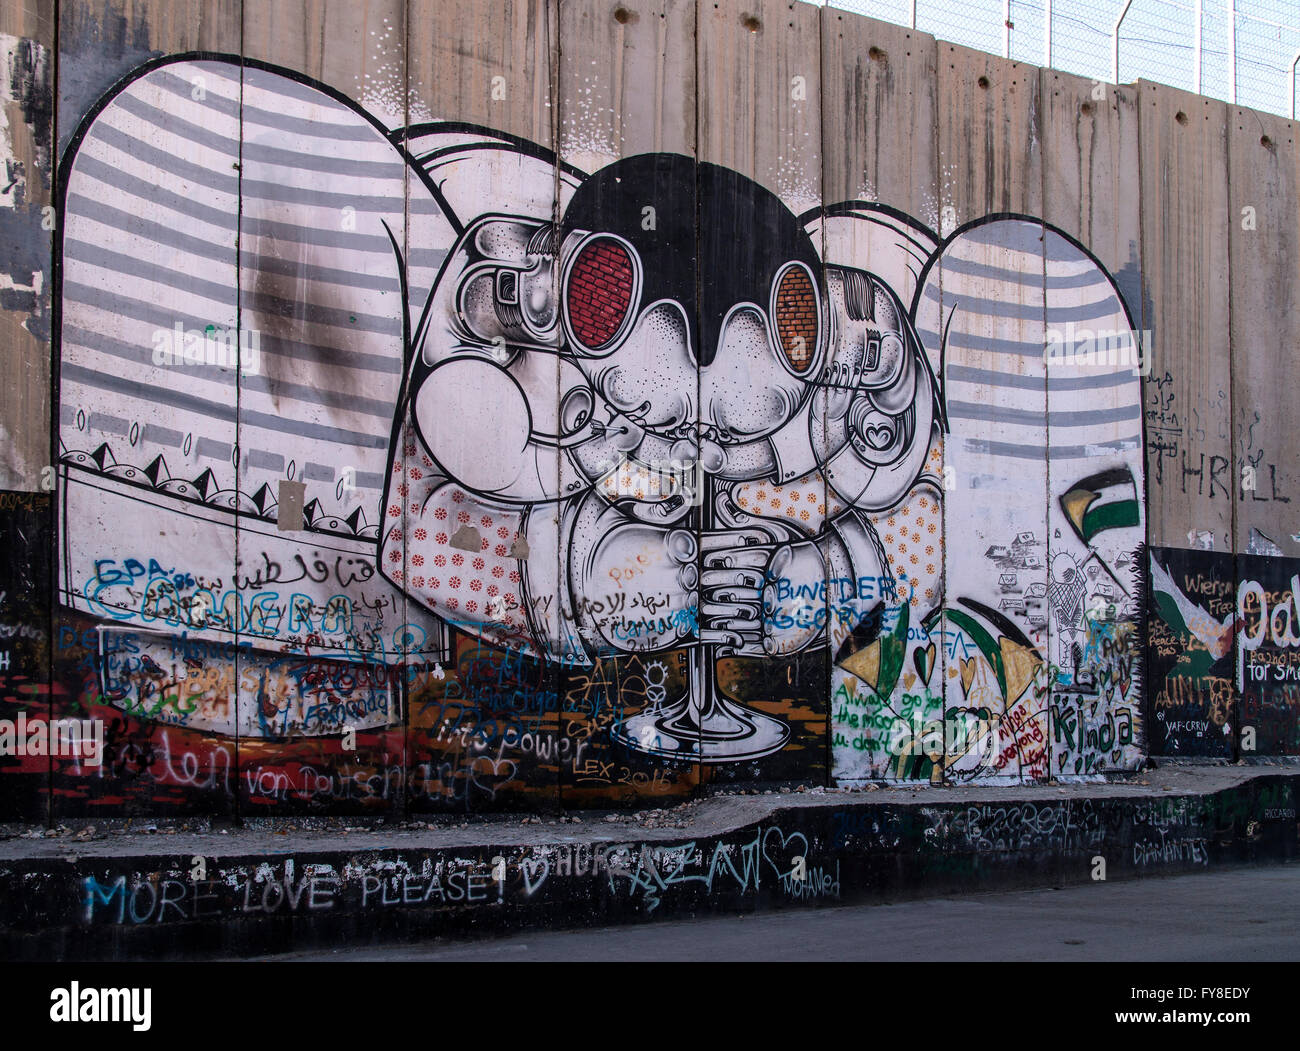 Graffiti Palestinian side along the West Bank (Bethlehem) - Stock Image